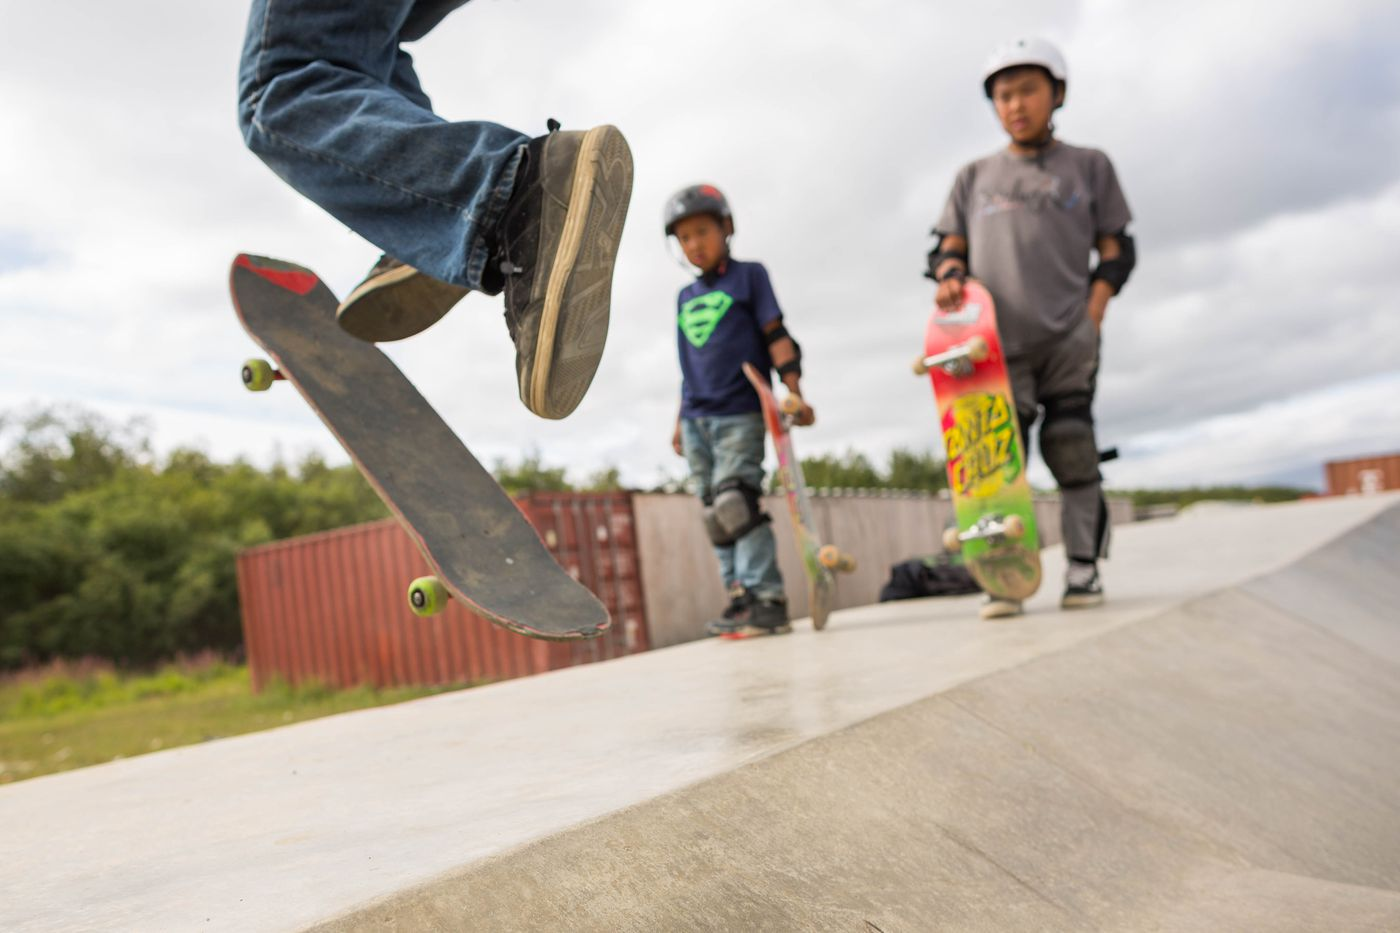 Ian Fischer, 9, left, and Evan Waska, 13, watch Ethan Nicolai, 13, practice a trick at the Kwethluk skate park on Friday, August 7, 2015. The park, which was built with an Indian Health Services grant, is the only one of its kind in a small rural Alaska village. (Loren Holmes / ADN)